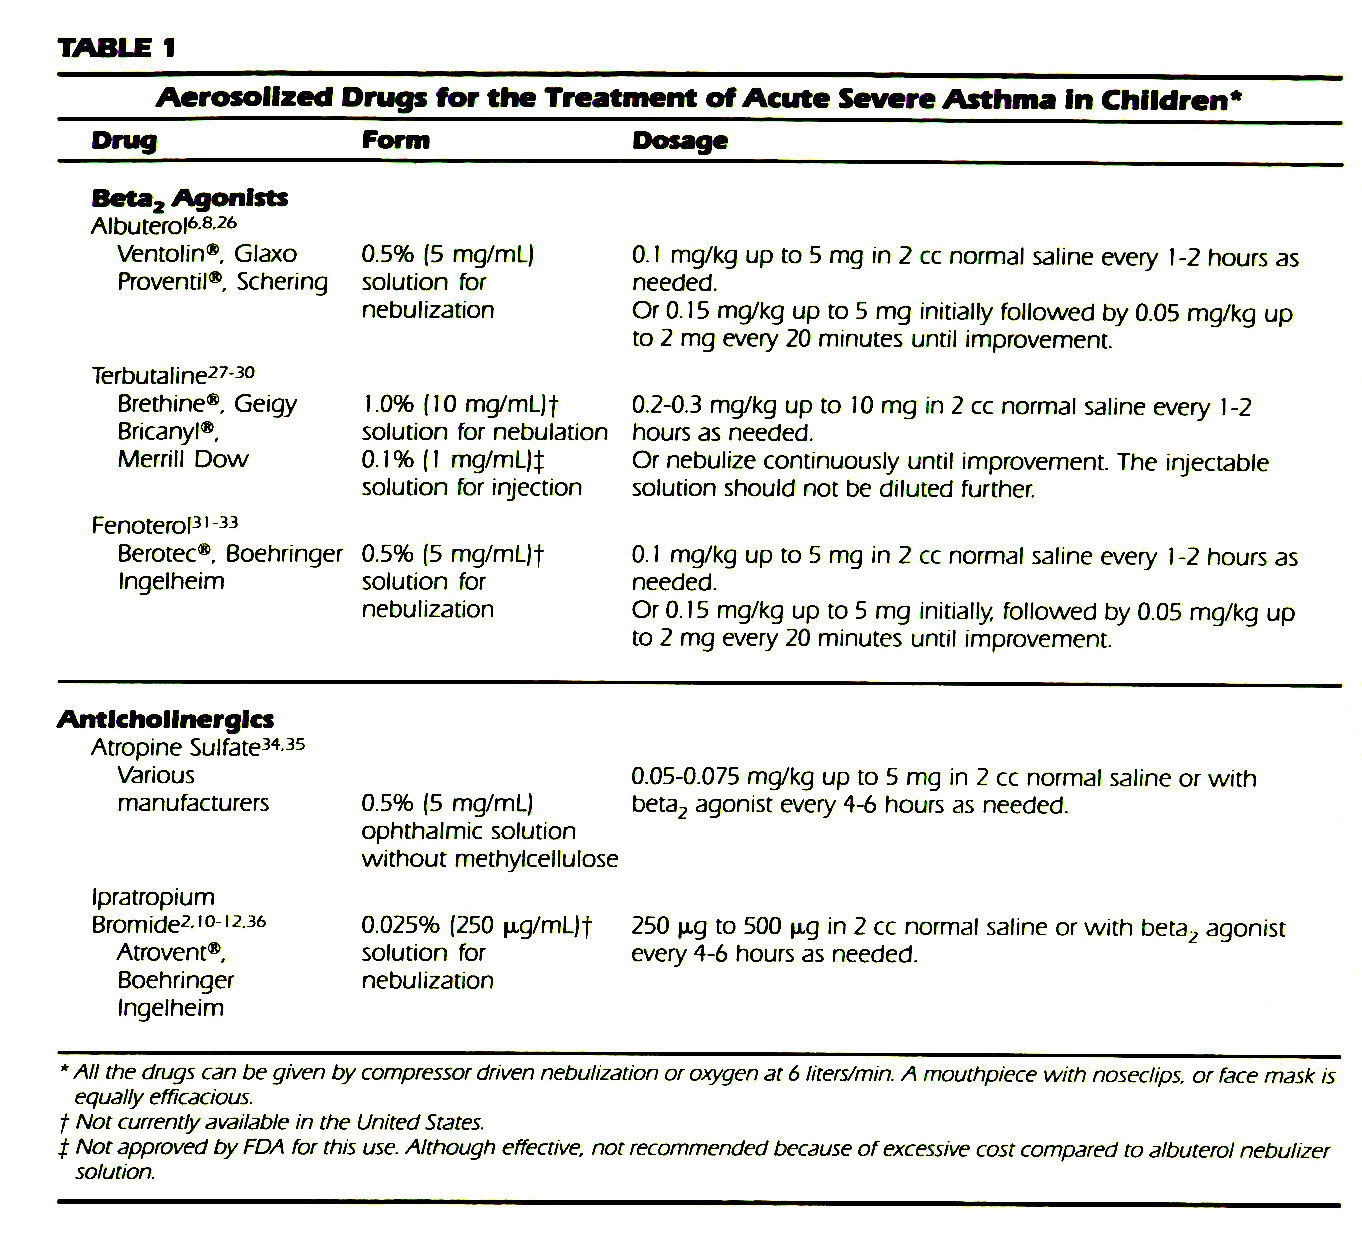 TABLElAerosolized Drugs for the Treatment of Acute Severe Asthma In Children*